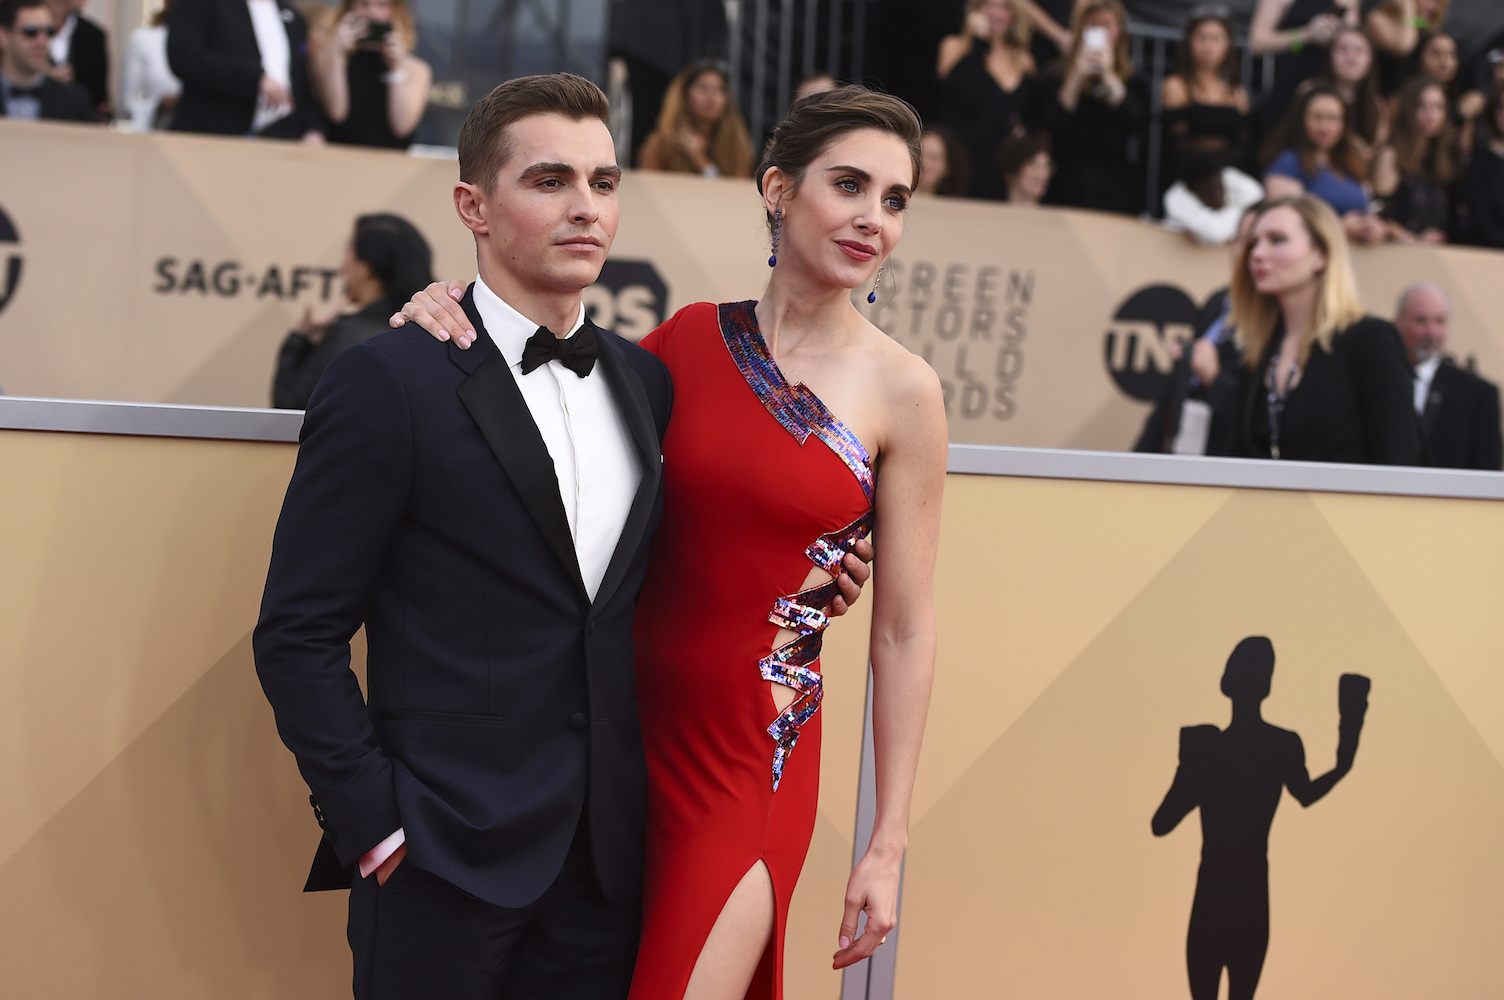 <div class='meta'><div class='origin-logo' data-origin='AP'></div><span class='caption-text' data-credit='Jordan Strauss/Invision/AP'>Dave Franco, left, and Alison Brie arrive at the 24th annual Screen Actors Guild Awards at the Shrine Auditorium & Expo Hall on Sunday, Jan. 21, 2018, in Los Angeles.</span></div>